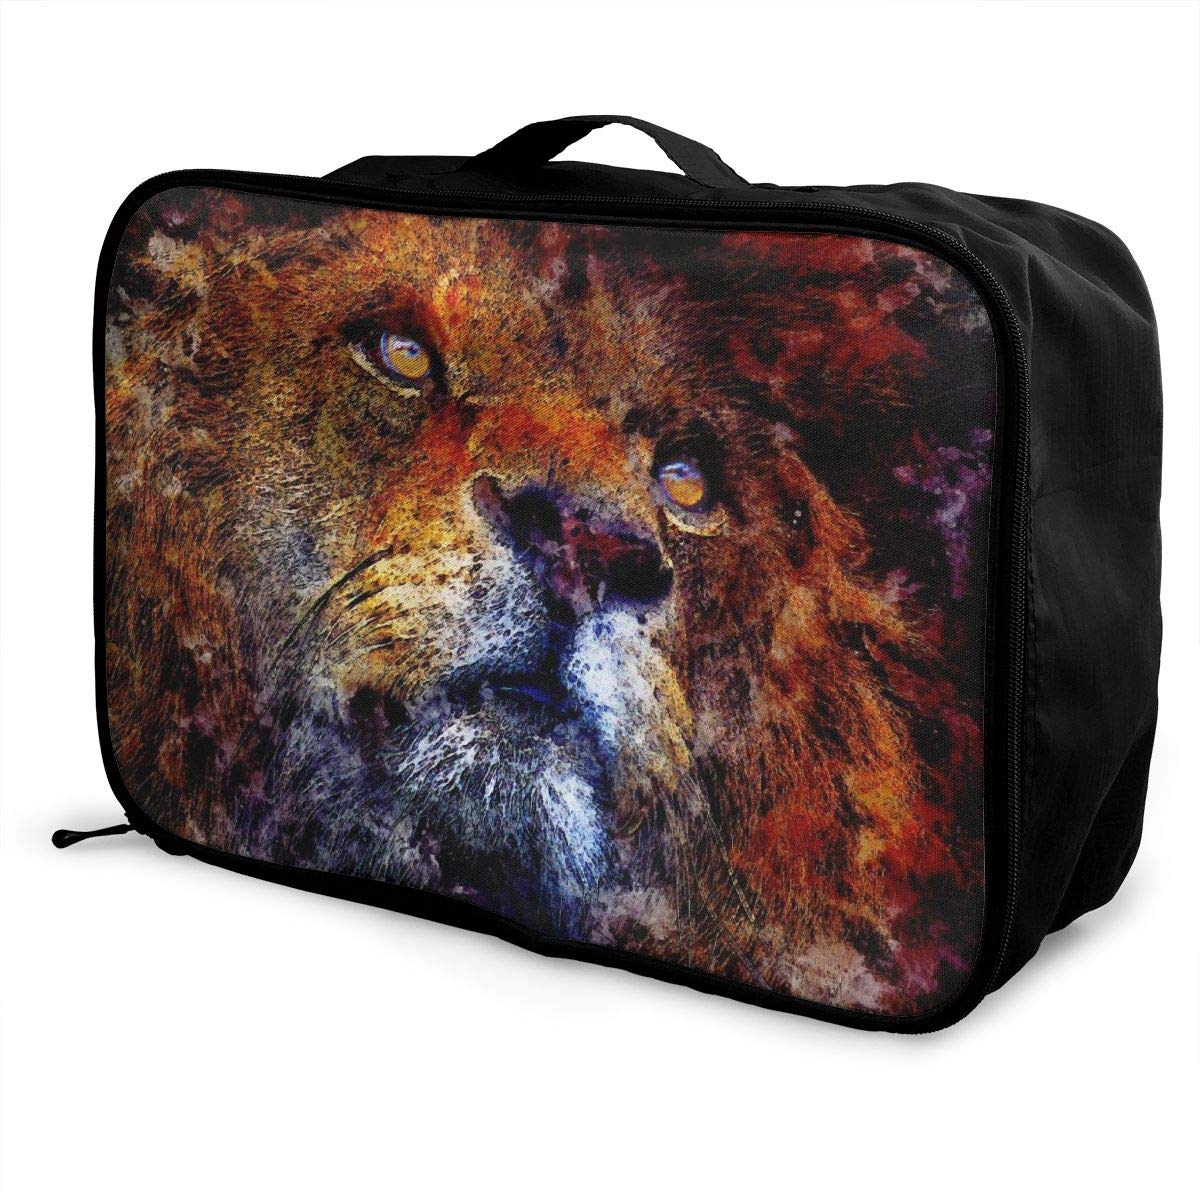 Lion Watercolor Paint Splash Travel Lightweight Waterproof Foldable Storage Carry Luggage Large Capacity Portable Luggage Bag Duffel Bag